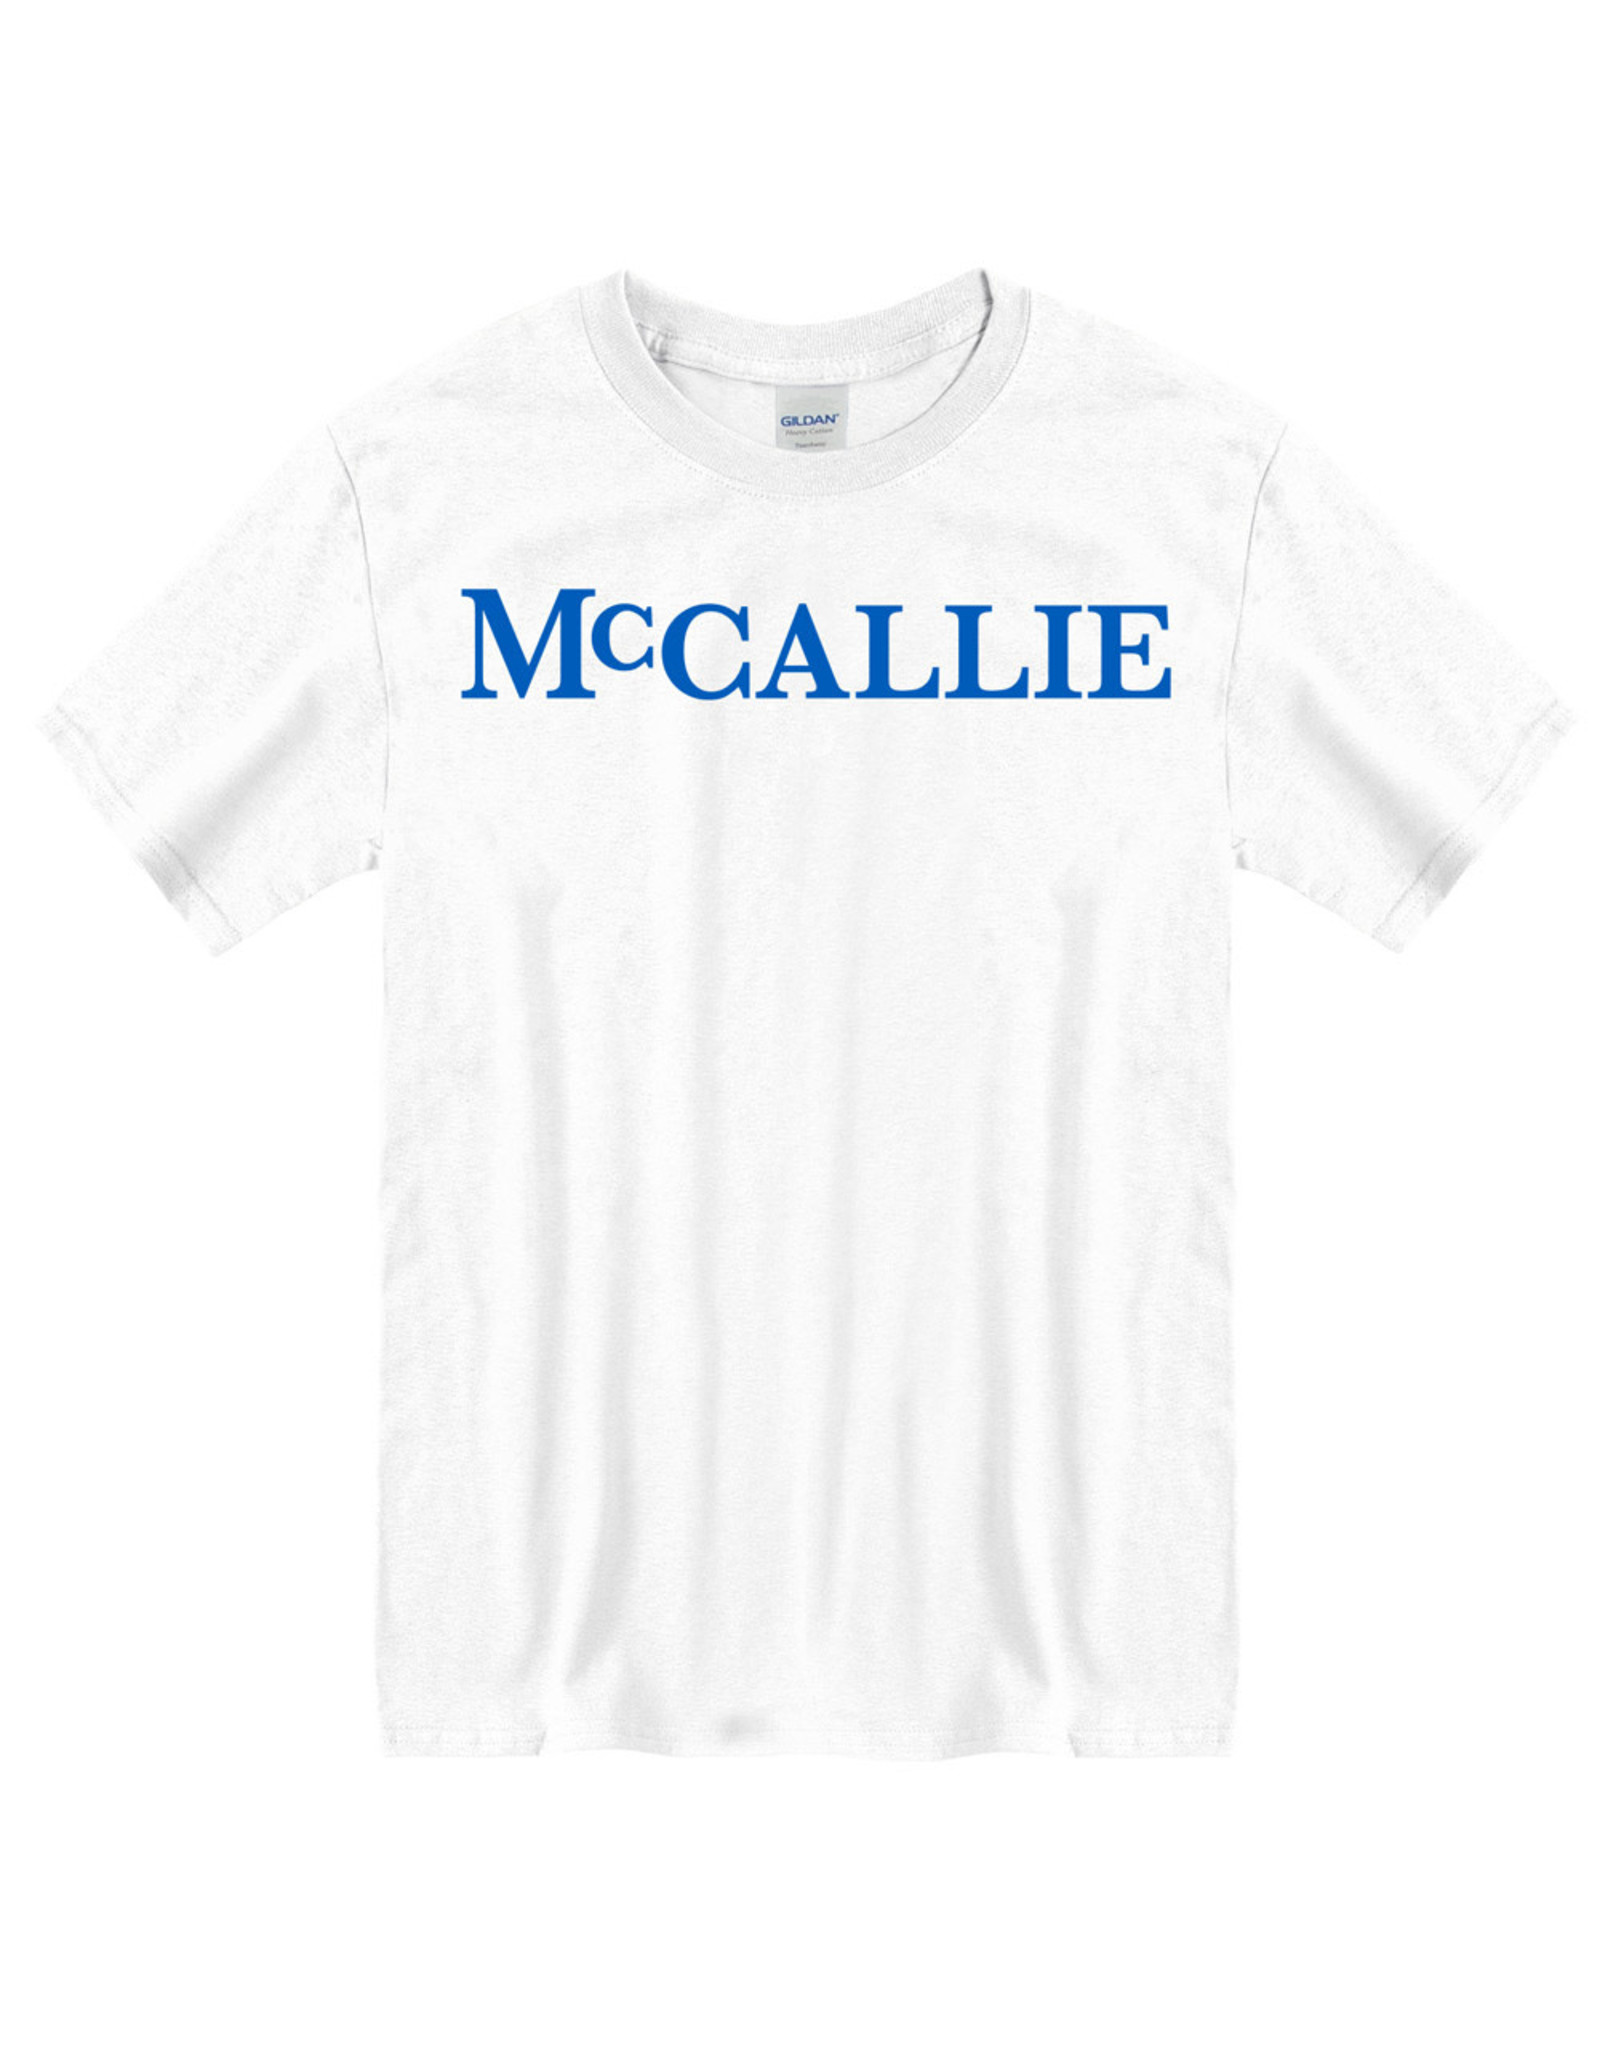 CLASSIC MCCALLIE T-SHIRT